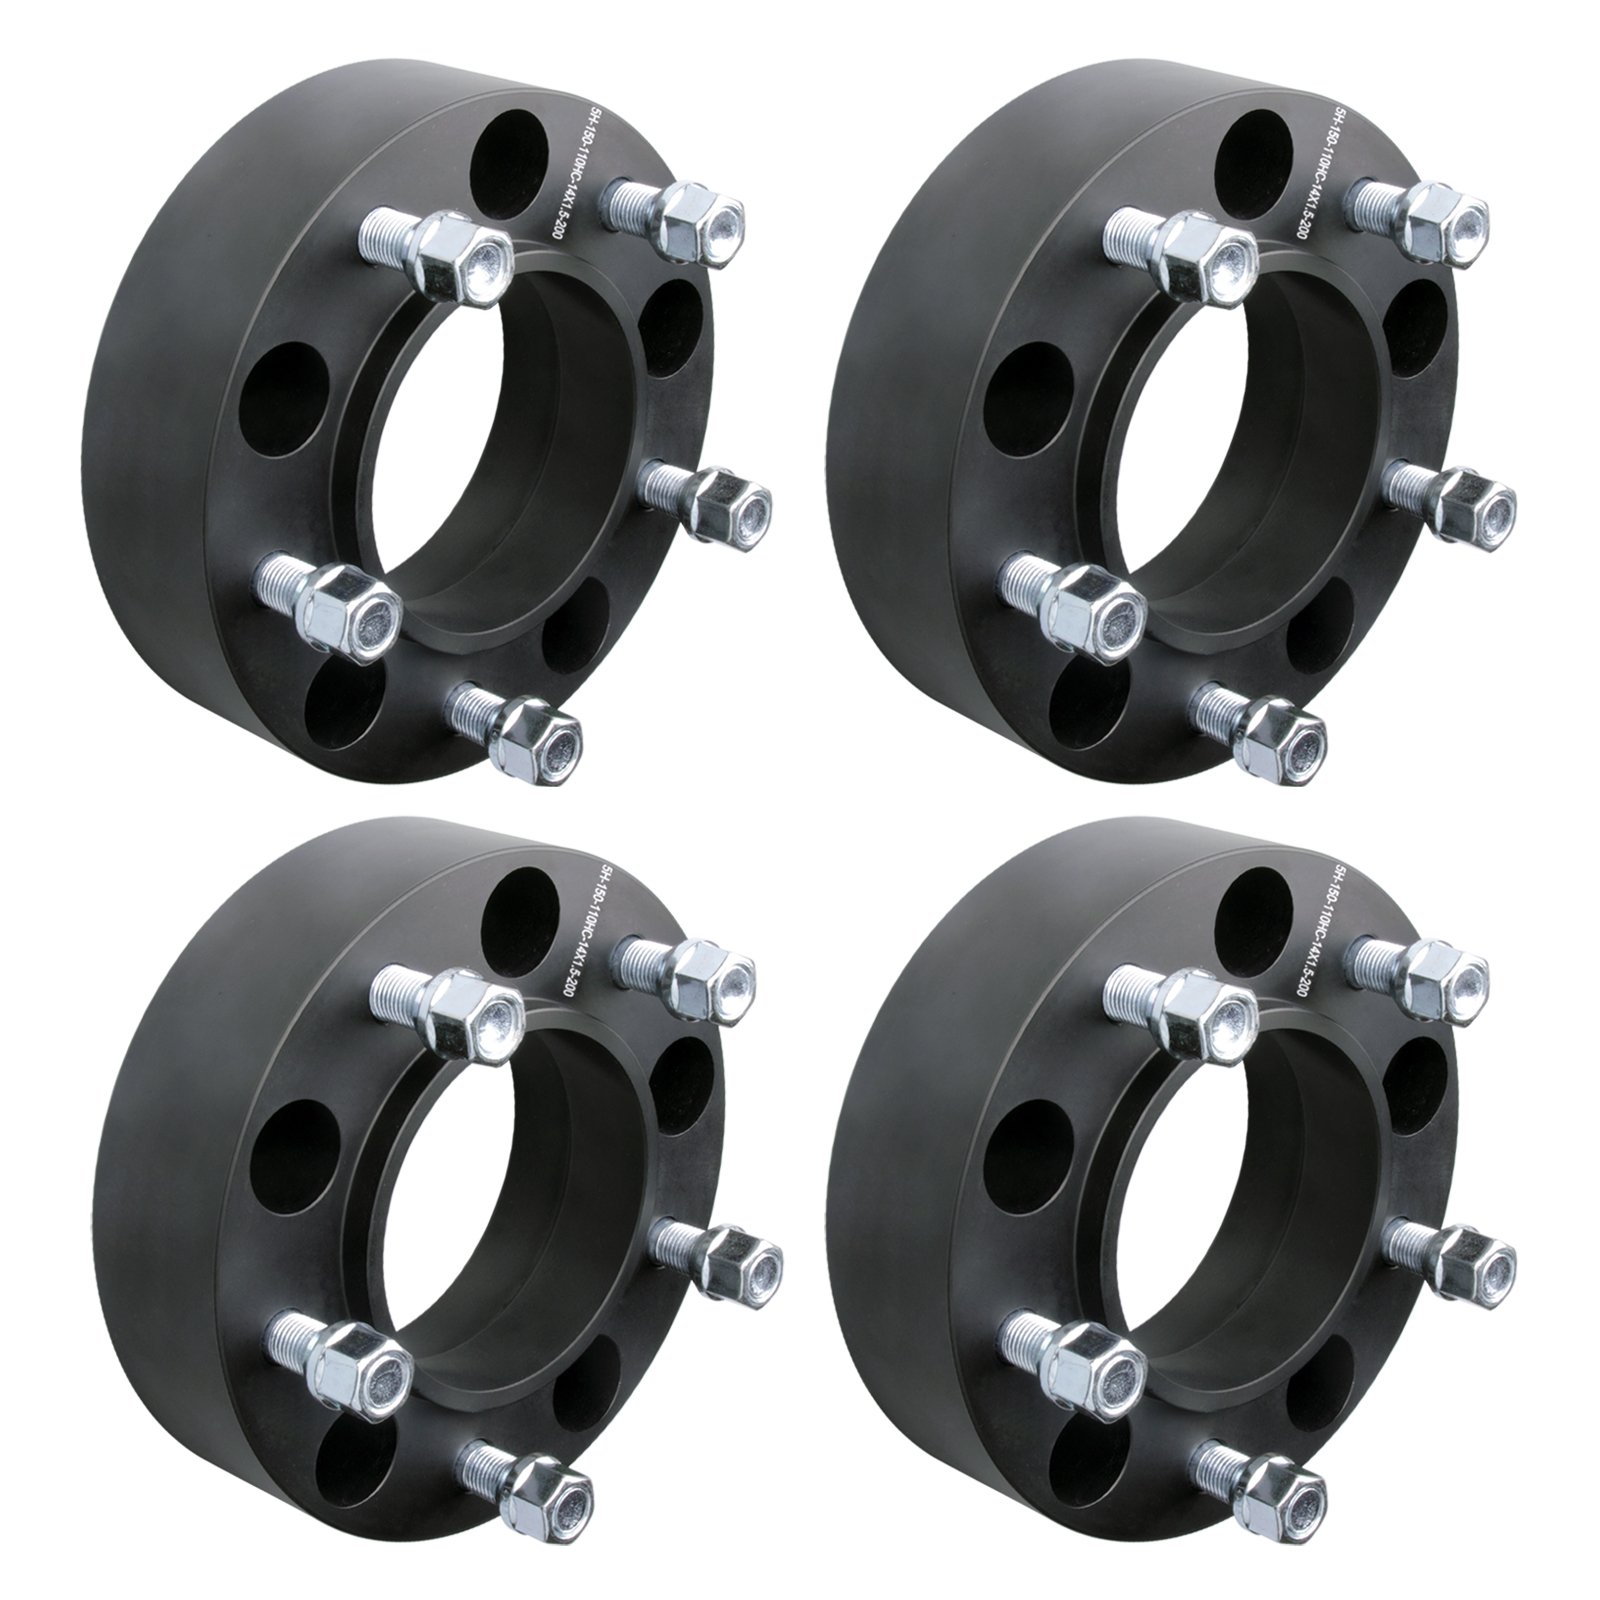 DCUAUTO 4pc 2007-2017 Toyota Tundra 5x150 Hubcentric Wheel Spacers Adapters 2 Inch with 14x1.5 Studs by DCUAUTO (Image #1)